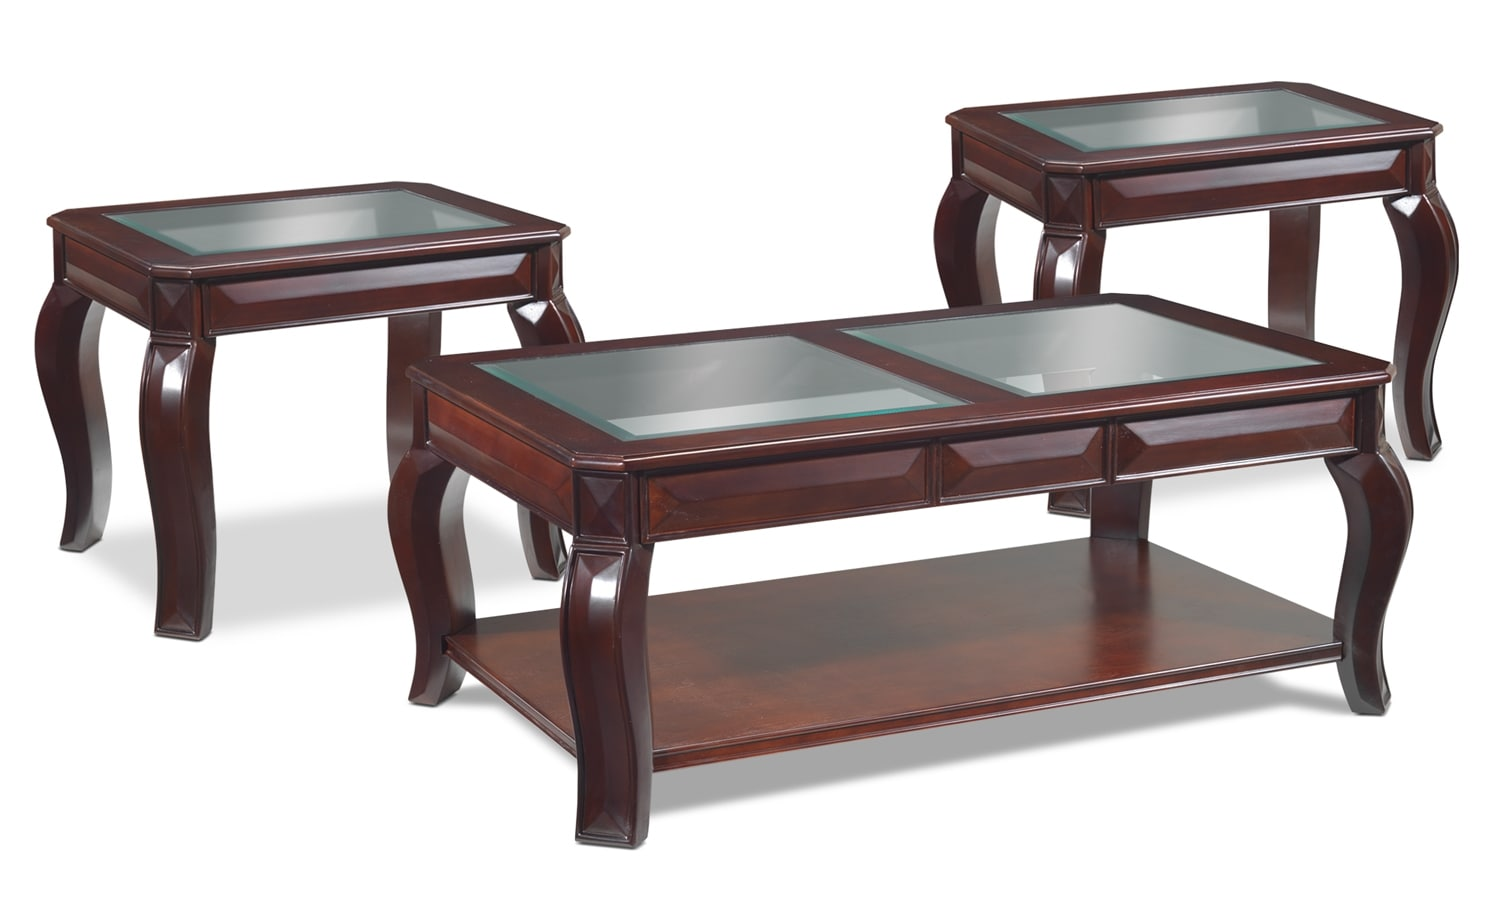 Accent and Occasional Furniture - Jamison Coffee Table and Two End Tables - Deep Espresso